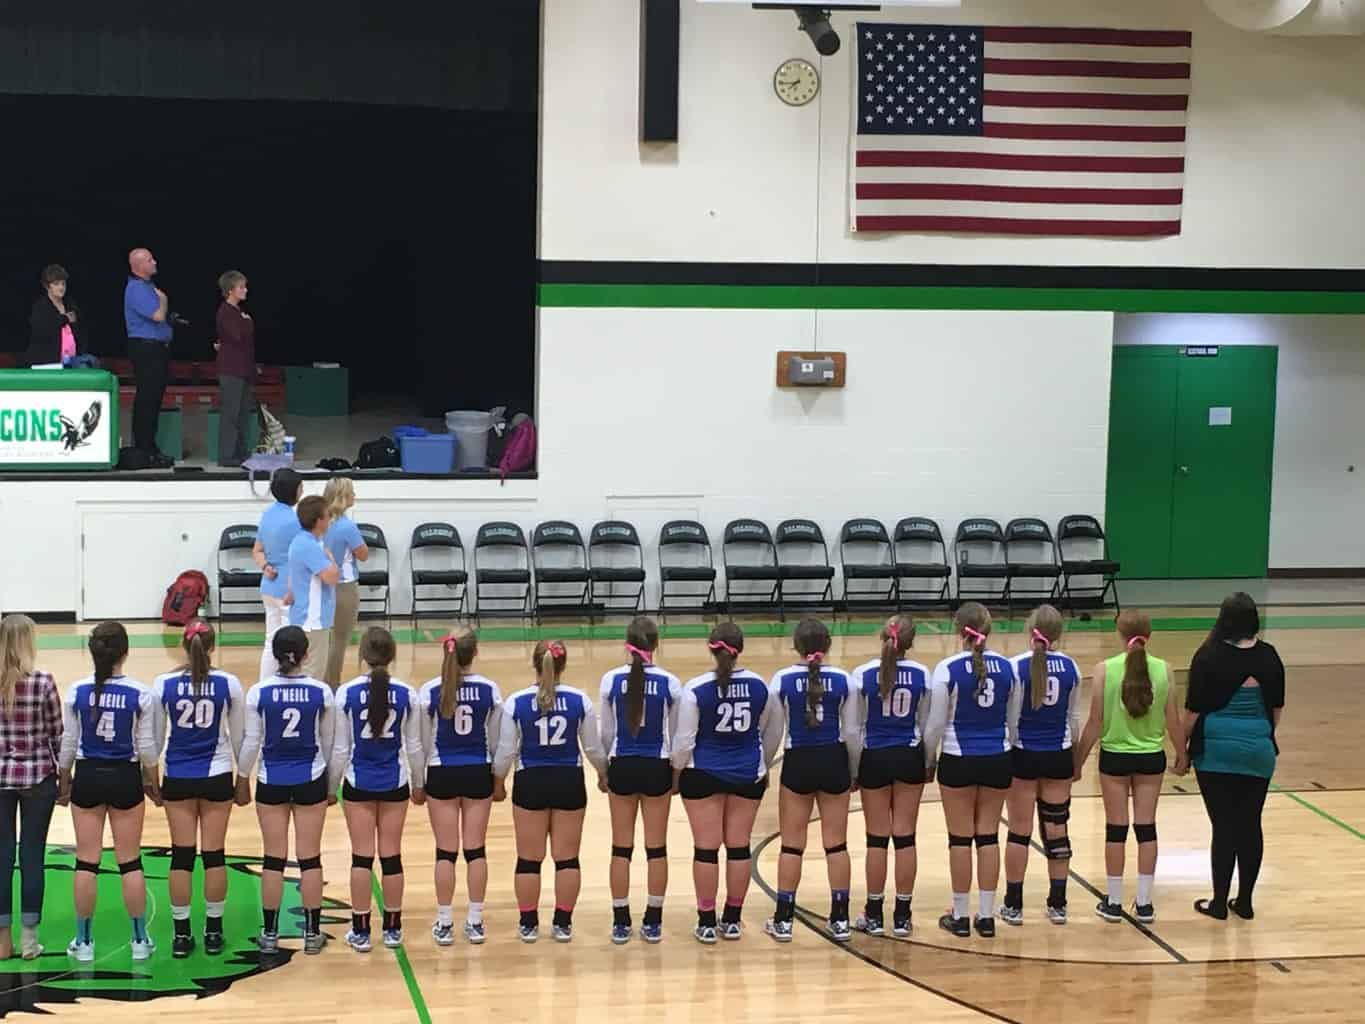 Volleyball players lined up